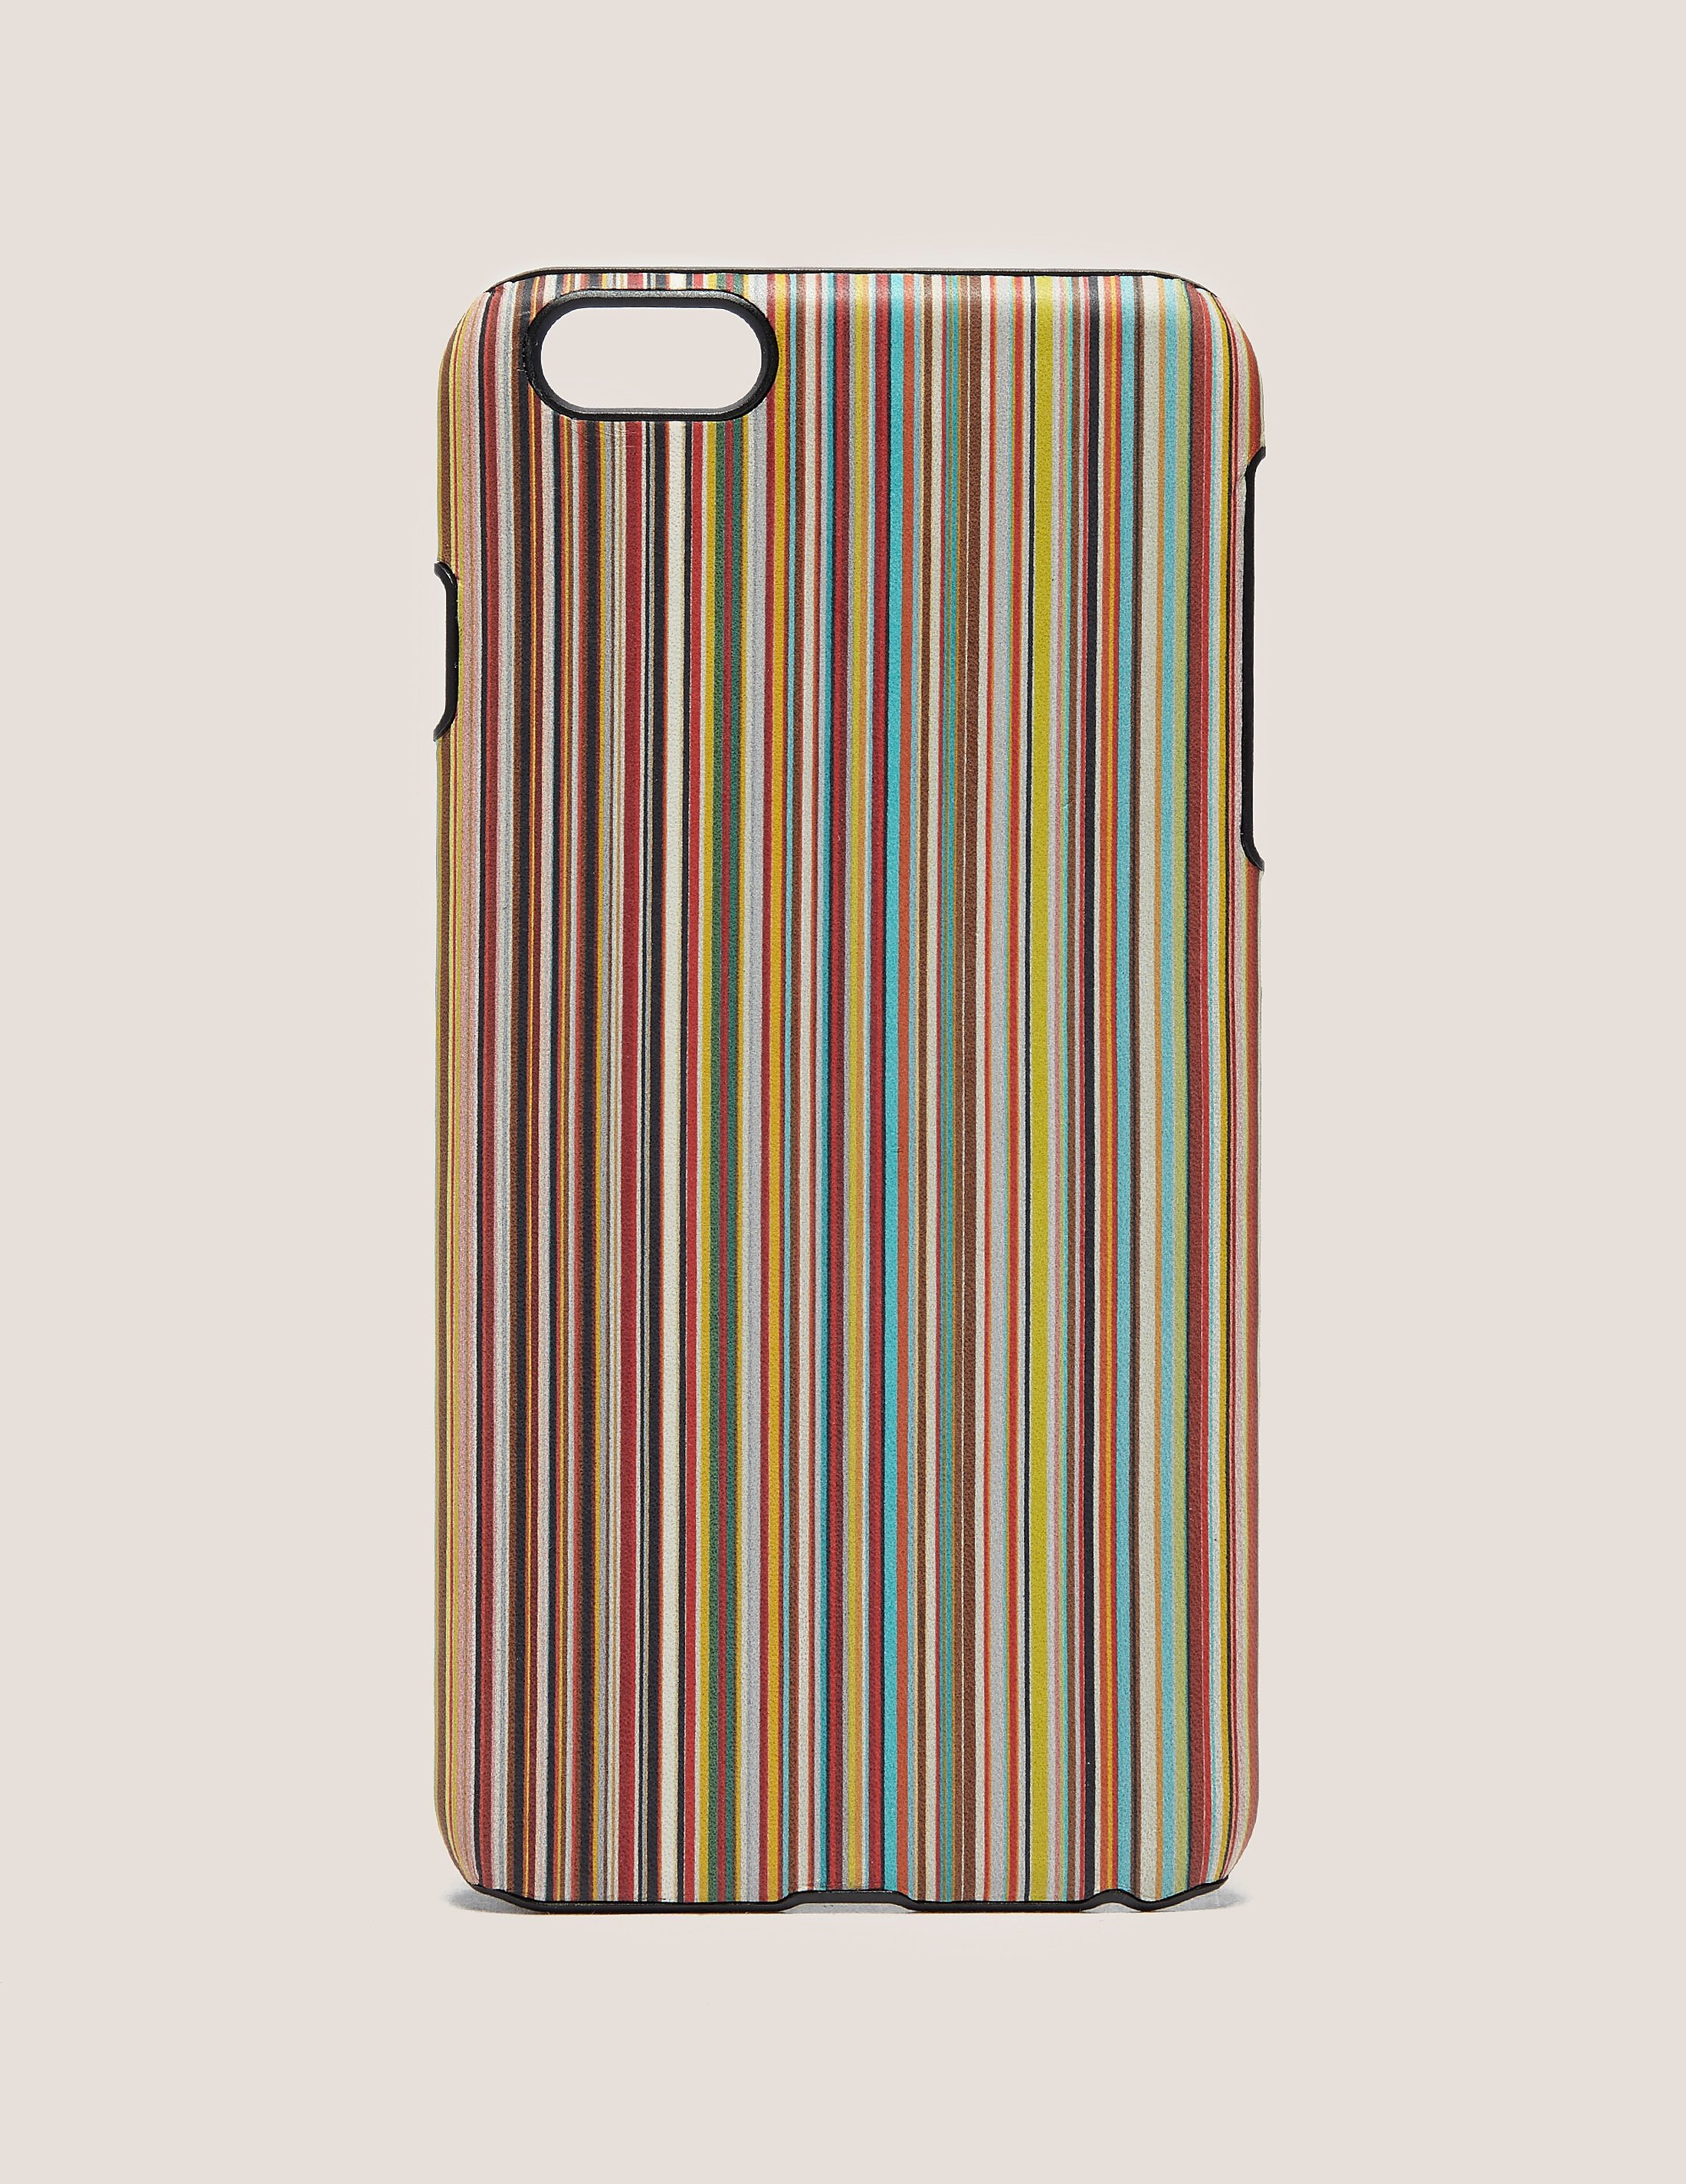 Paul Smith Signature Stripe iPhone 6+ Case